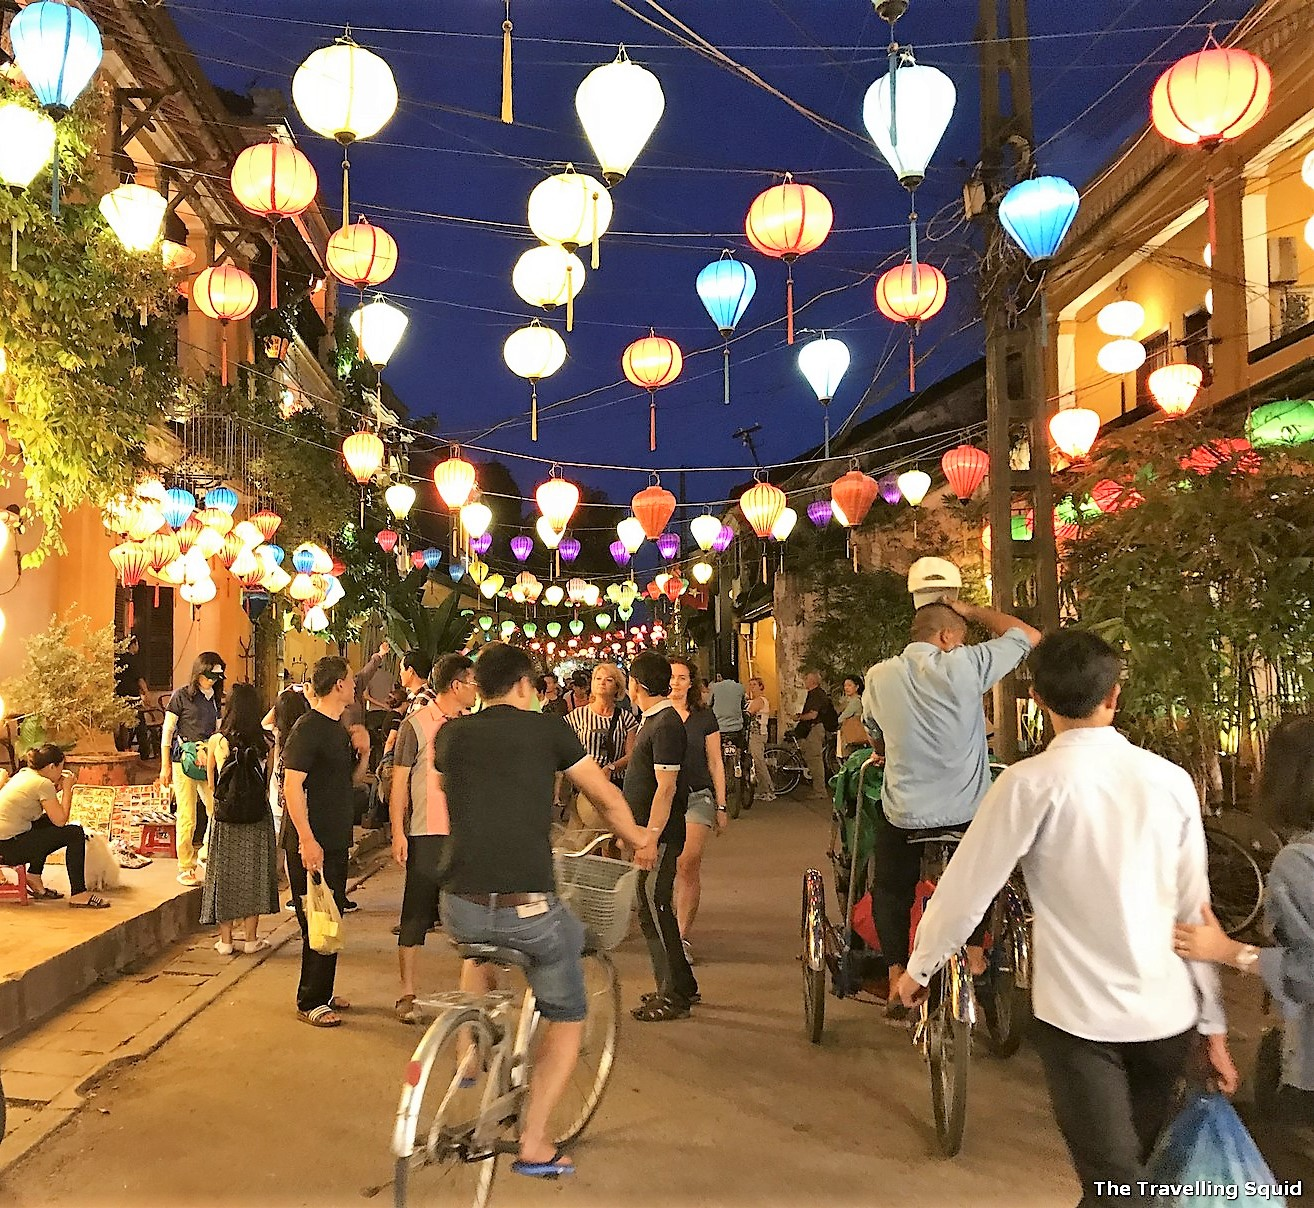 hoi an old town vietnam night lanterns